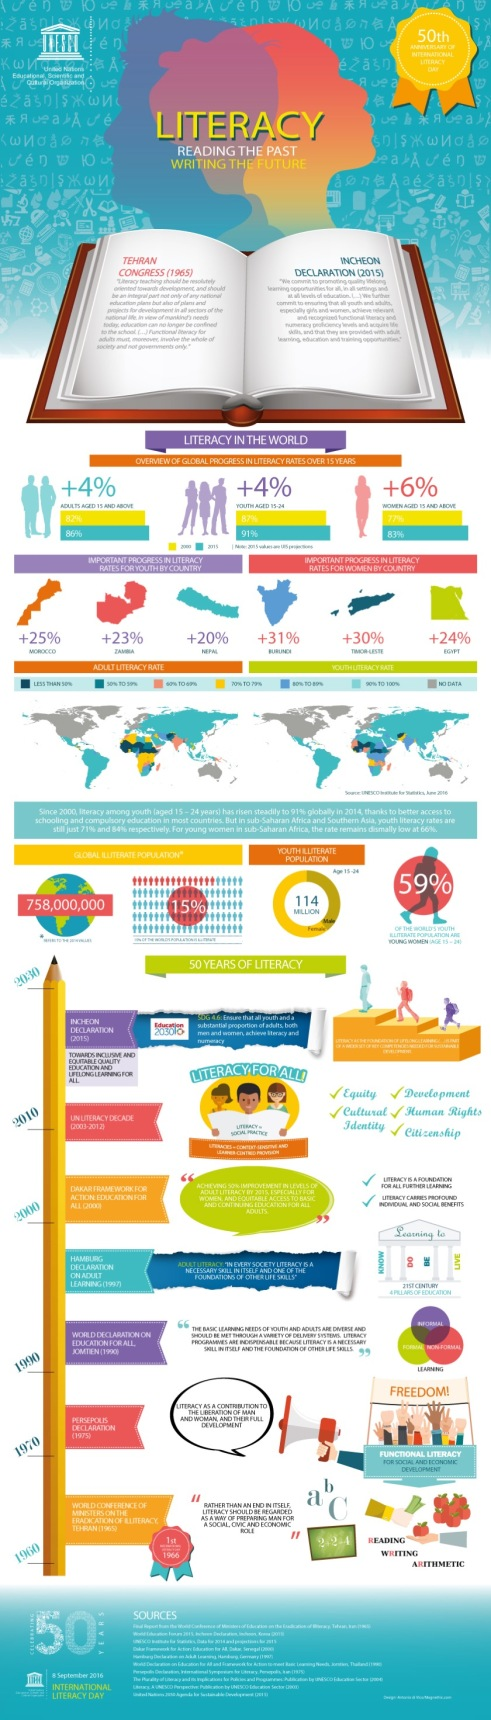 50-years-of-international-literacy-day-full-infographic